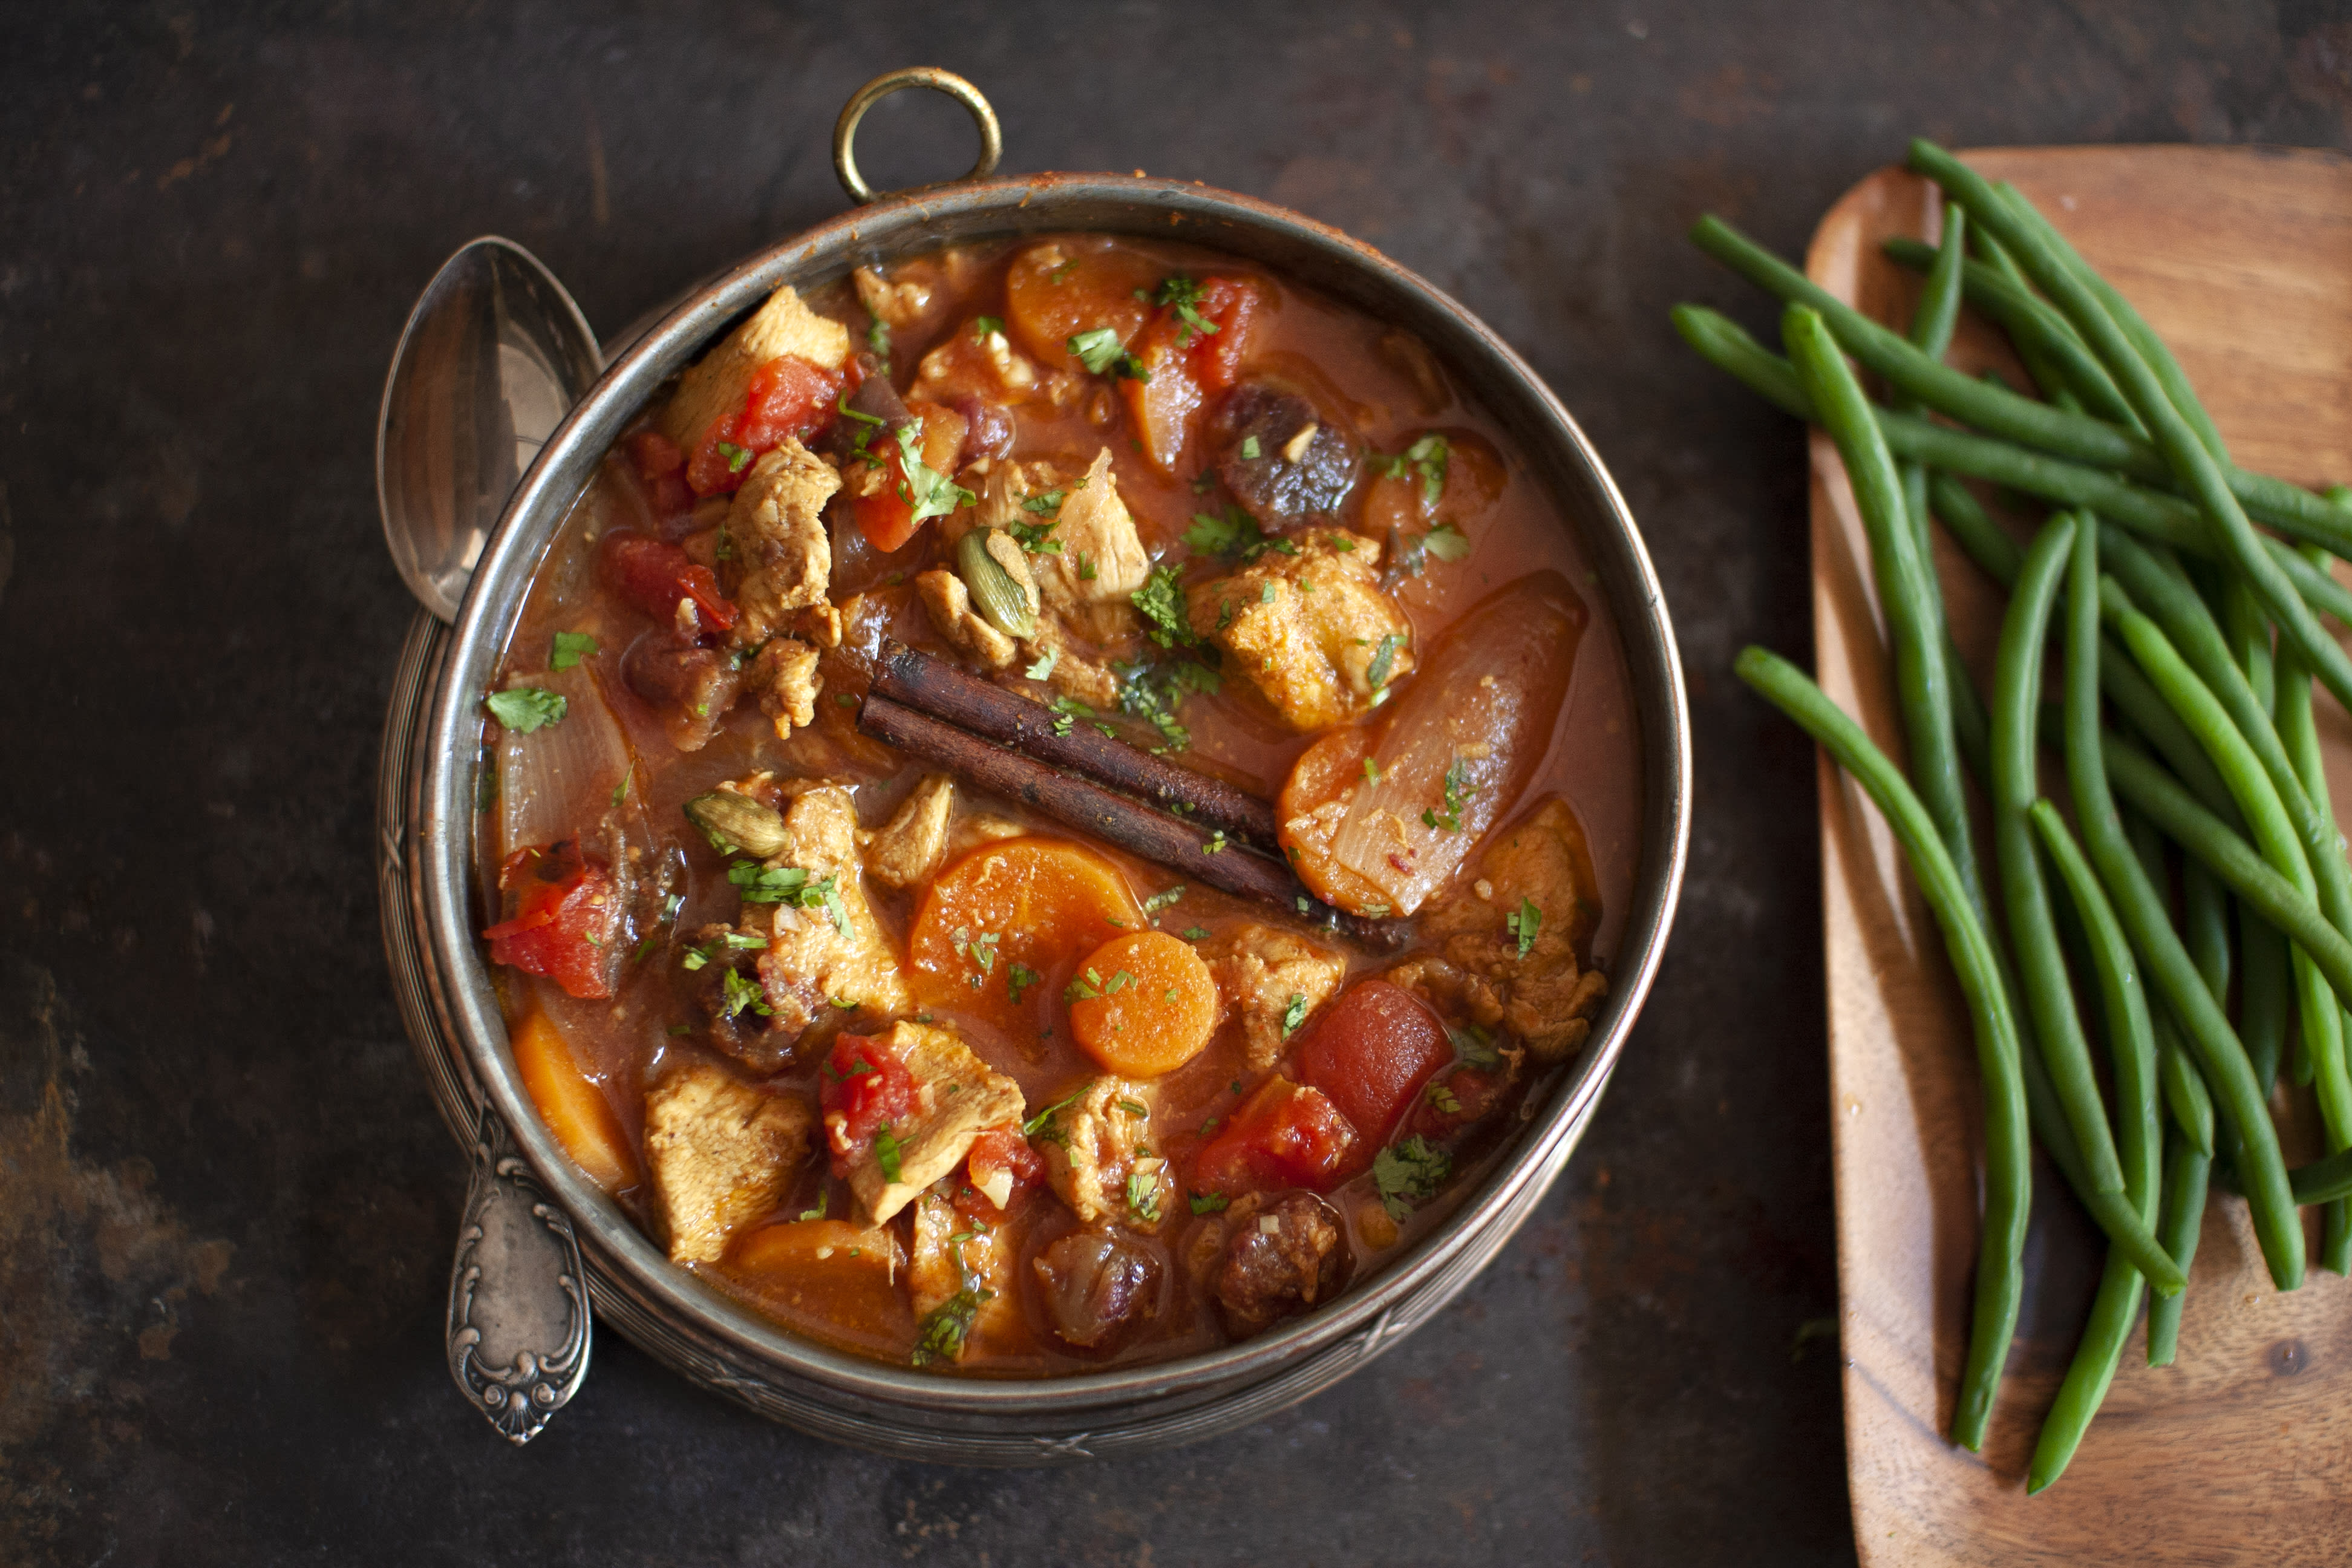 Moroccan Chicken and Date Stew with Green Beans